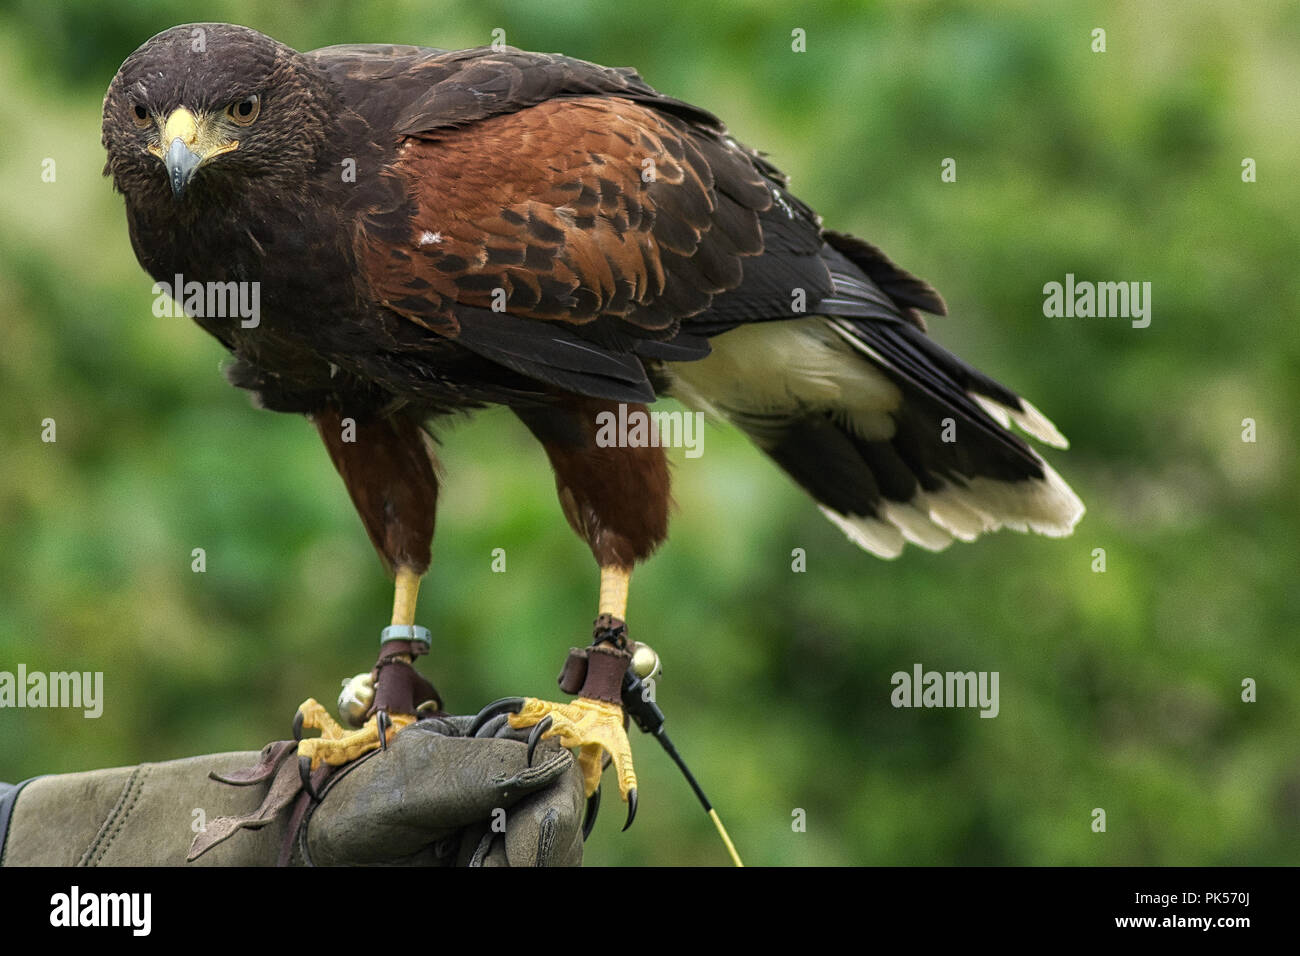 A closeup of a Harris's hawk as displayed at a falconry exhibition - Stock Image